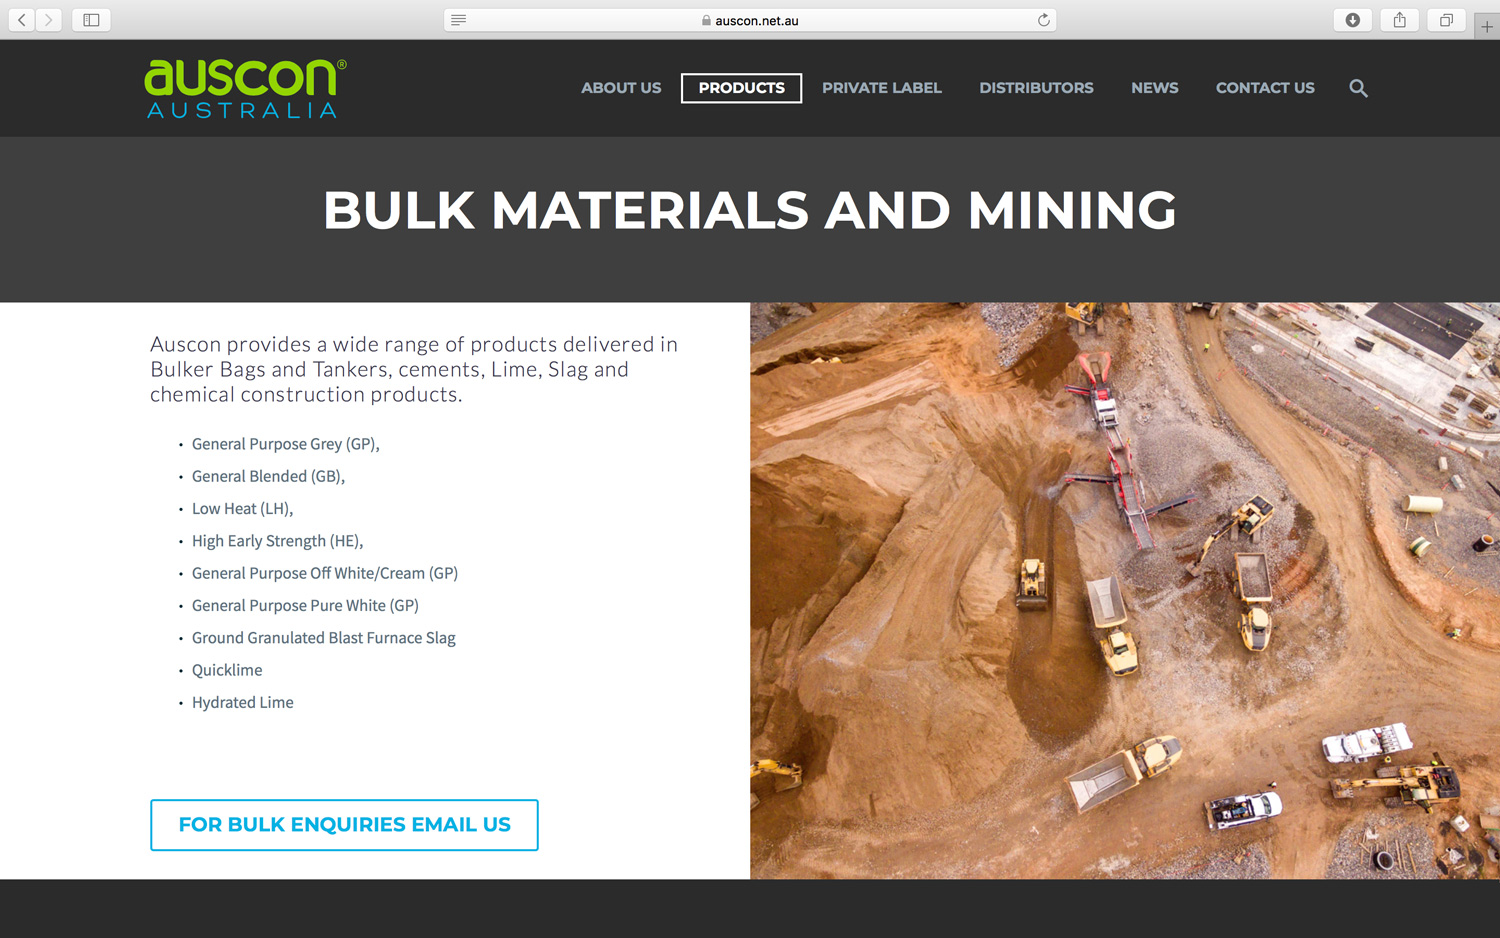 Auscon Bulk material and mining